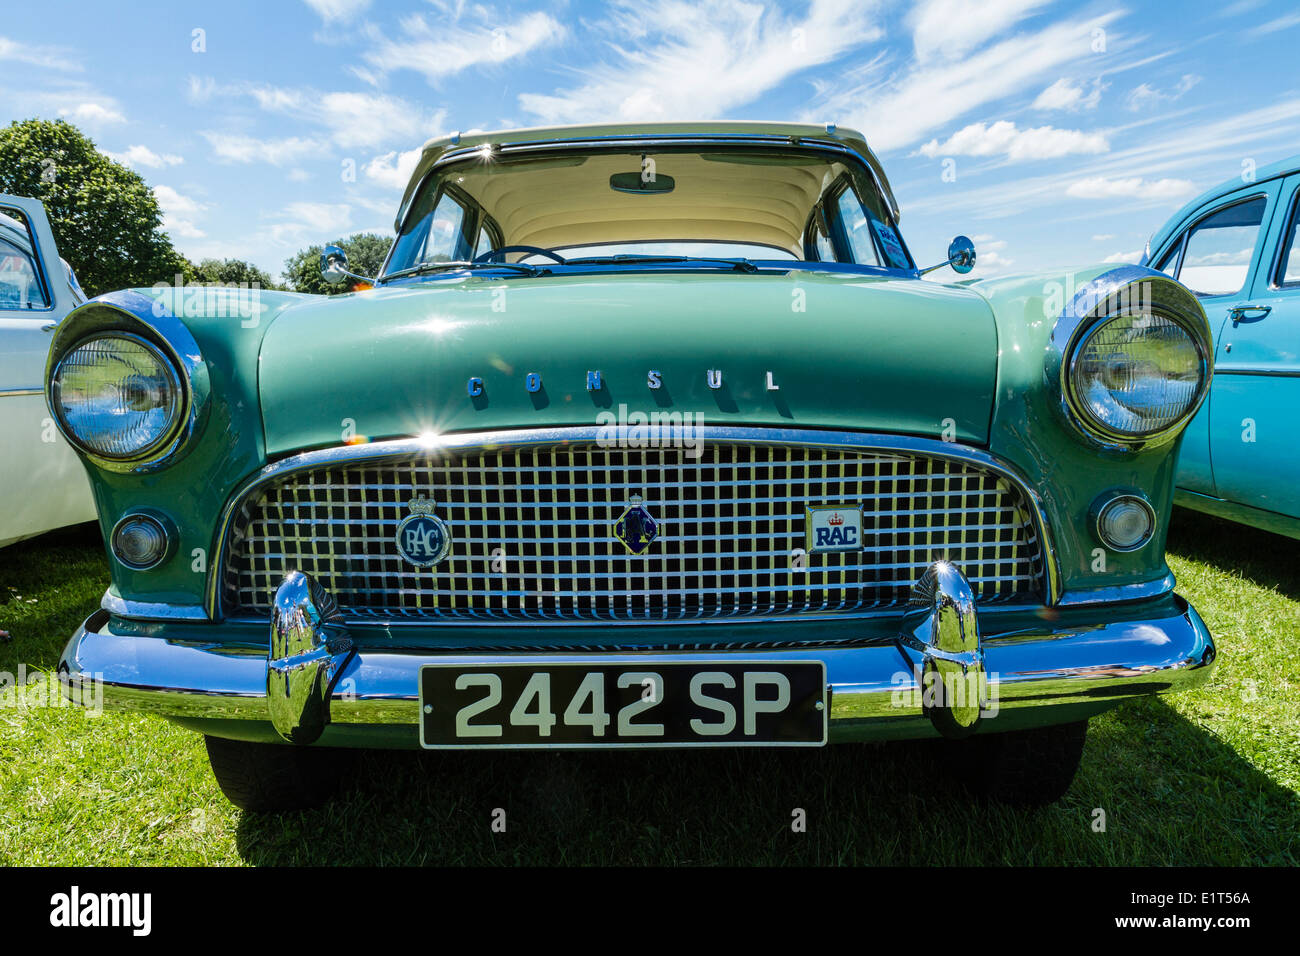 1950 Ford Consul classic car show Photo Stock